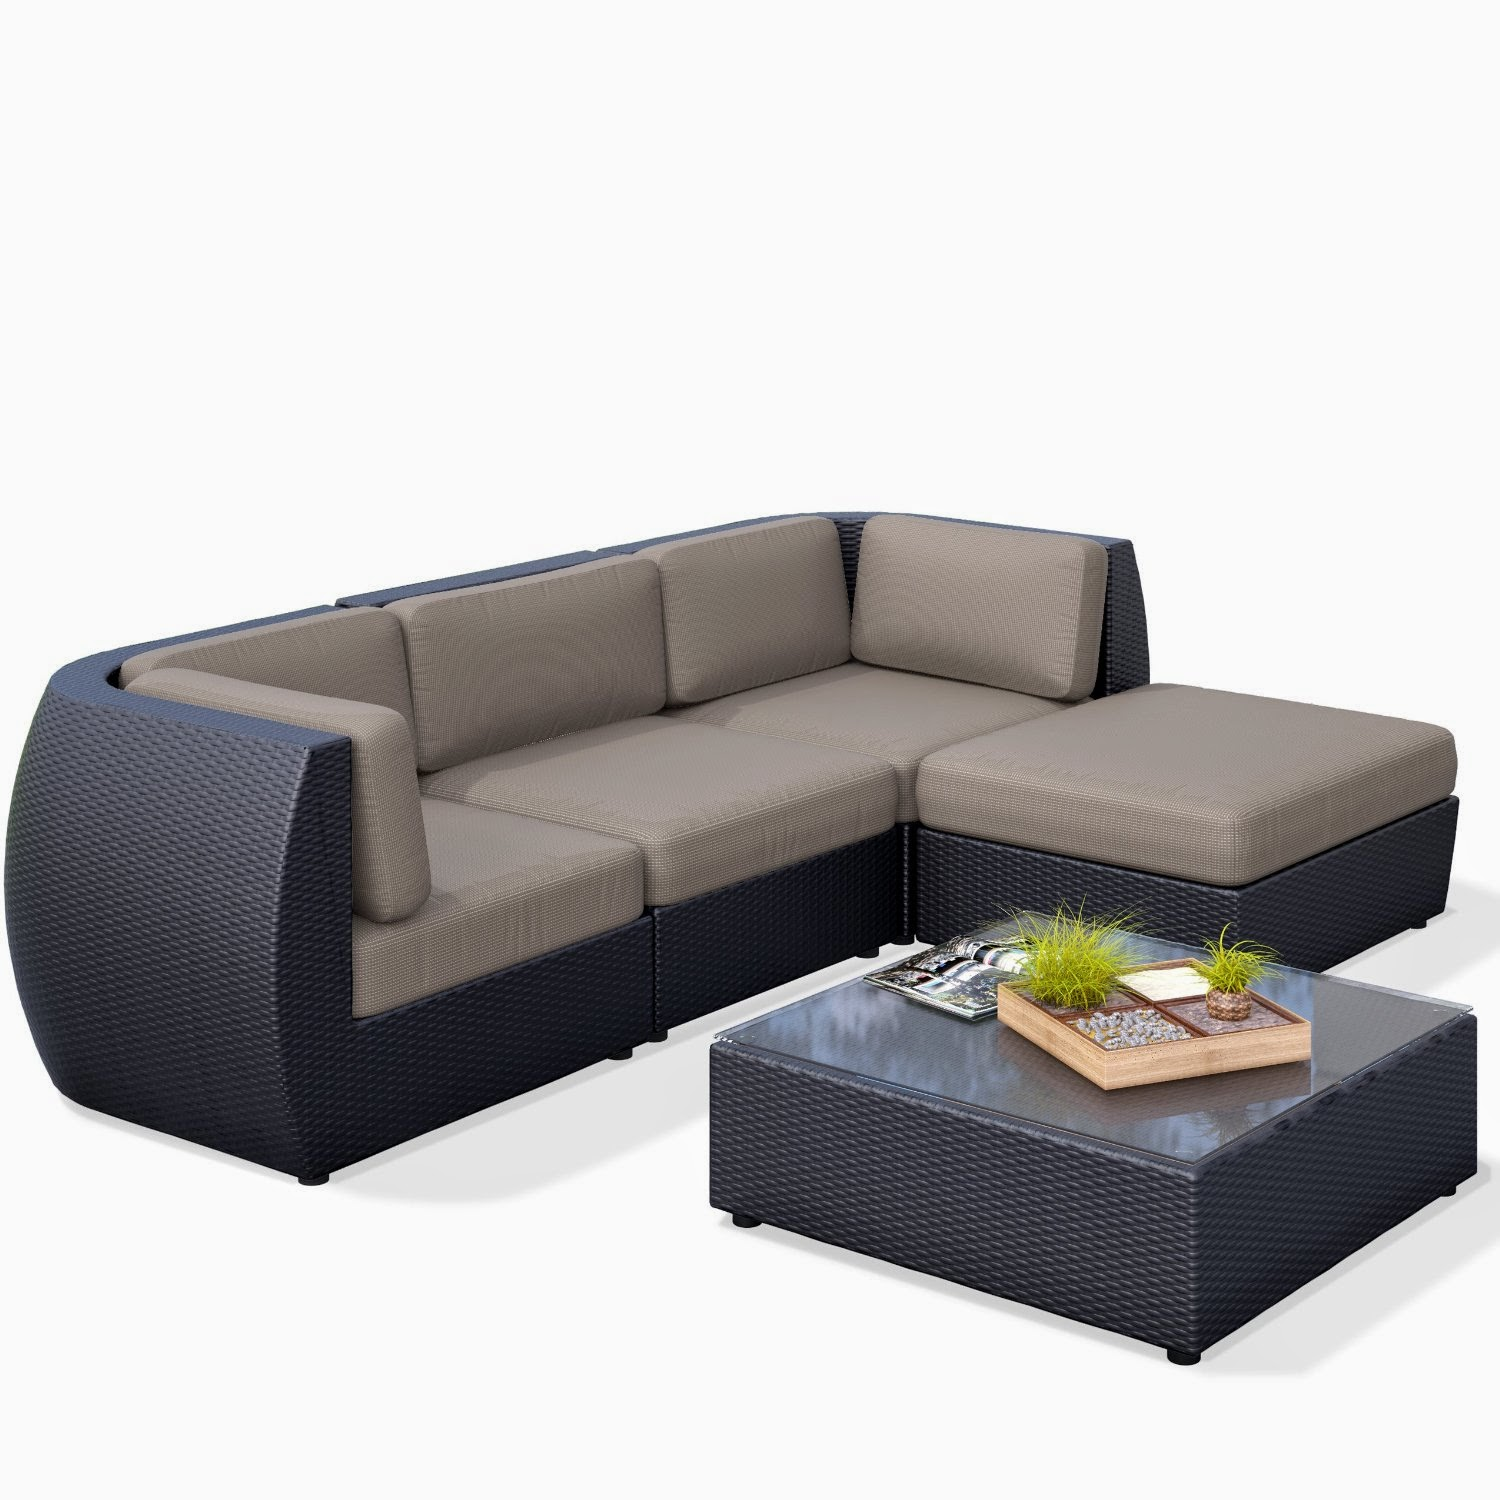 Curved sofa curved outdoor sofa for Sofa outdoor